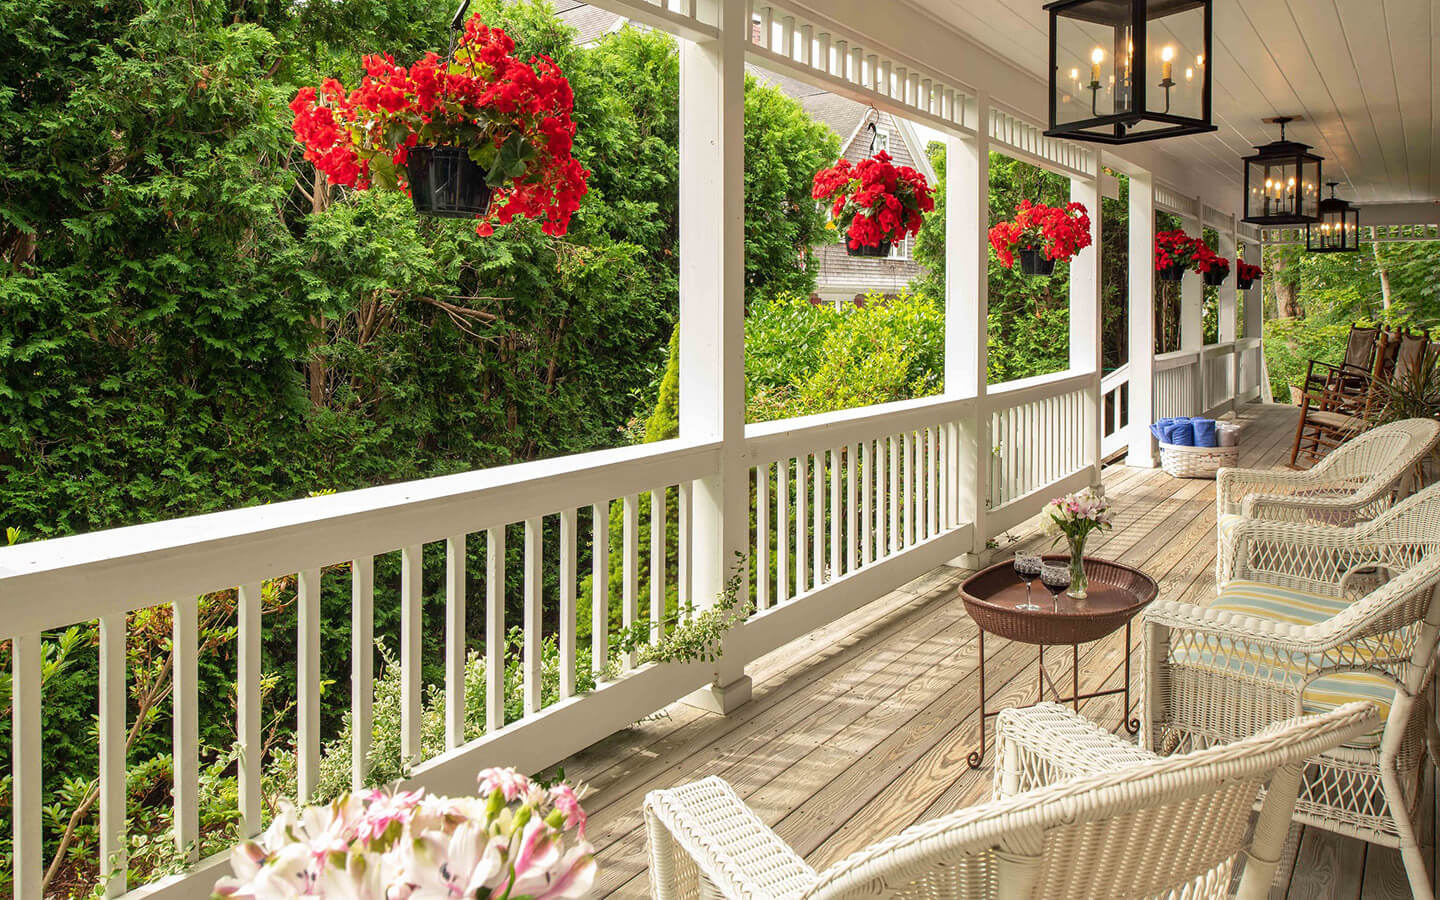 Porch Seating at Our Cape Cod B&B